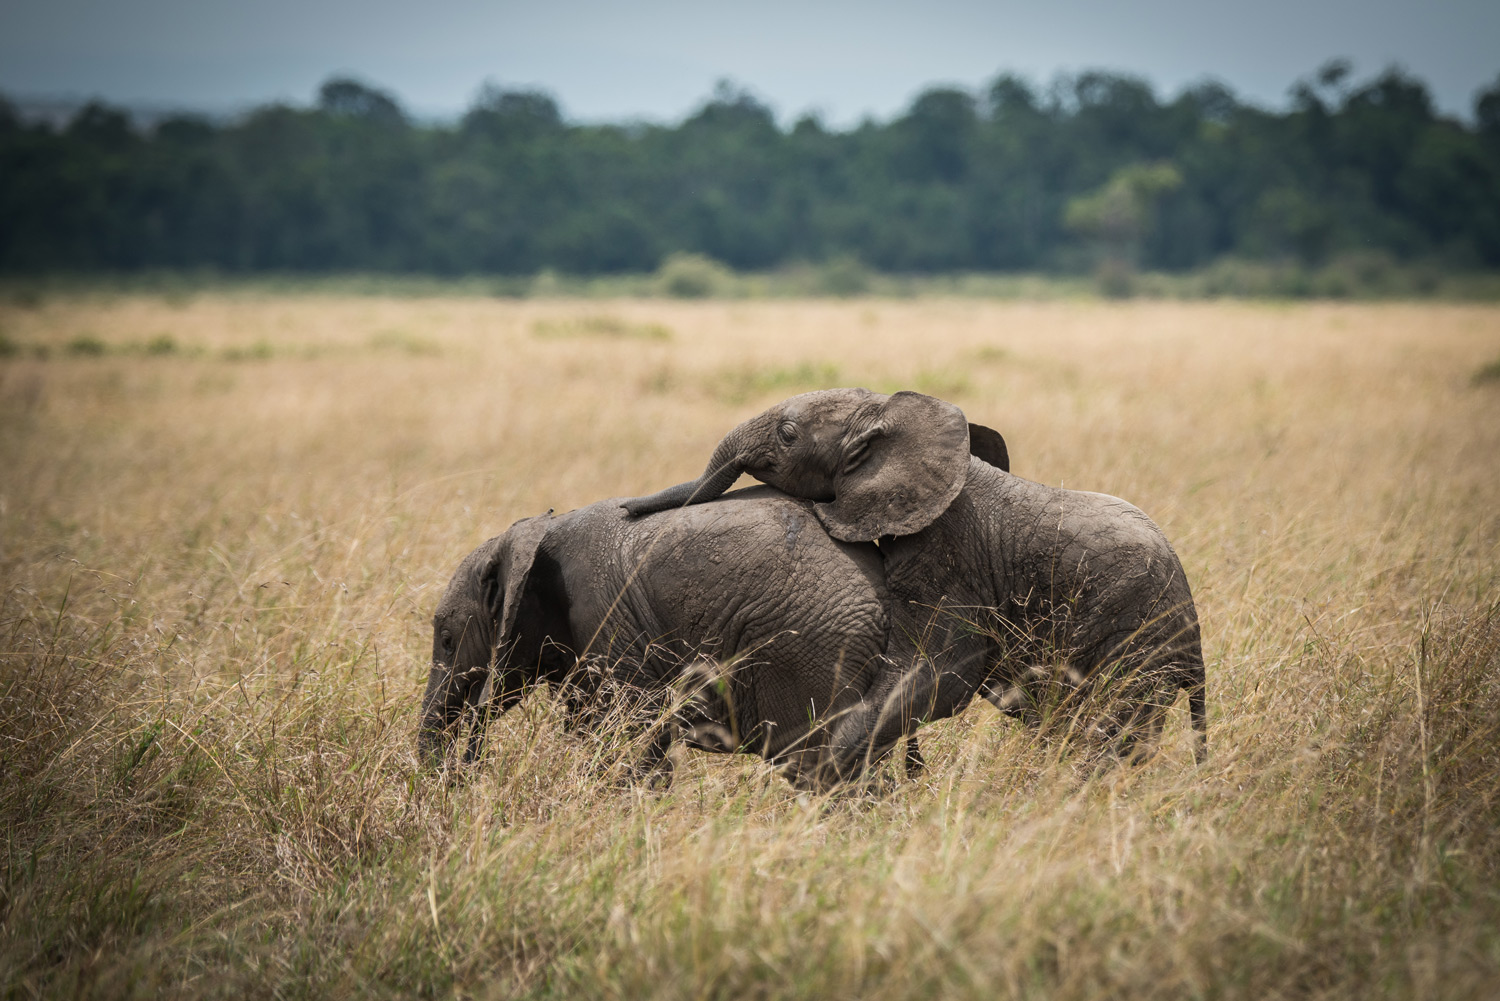 Baby elephants playing with eachother